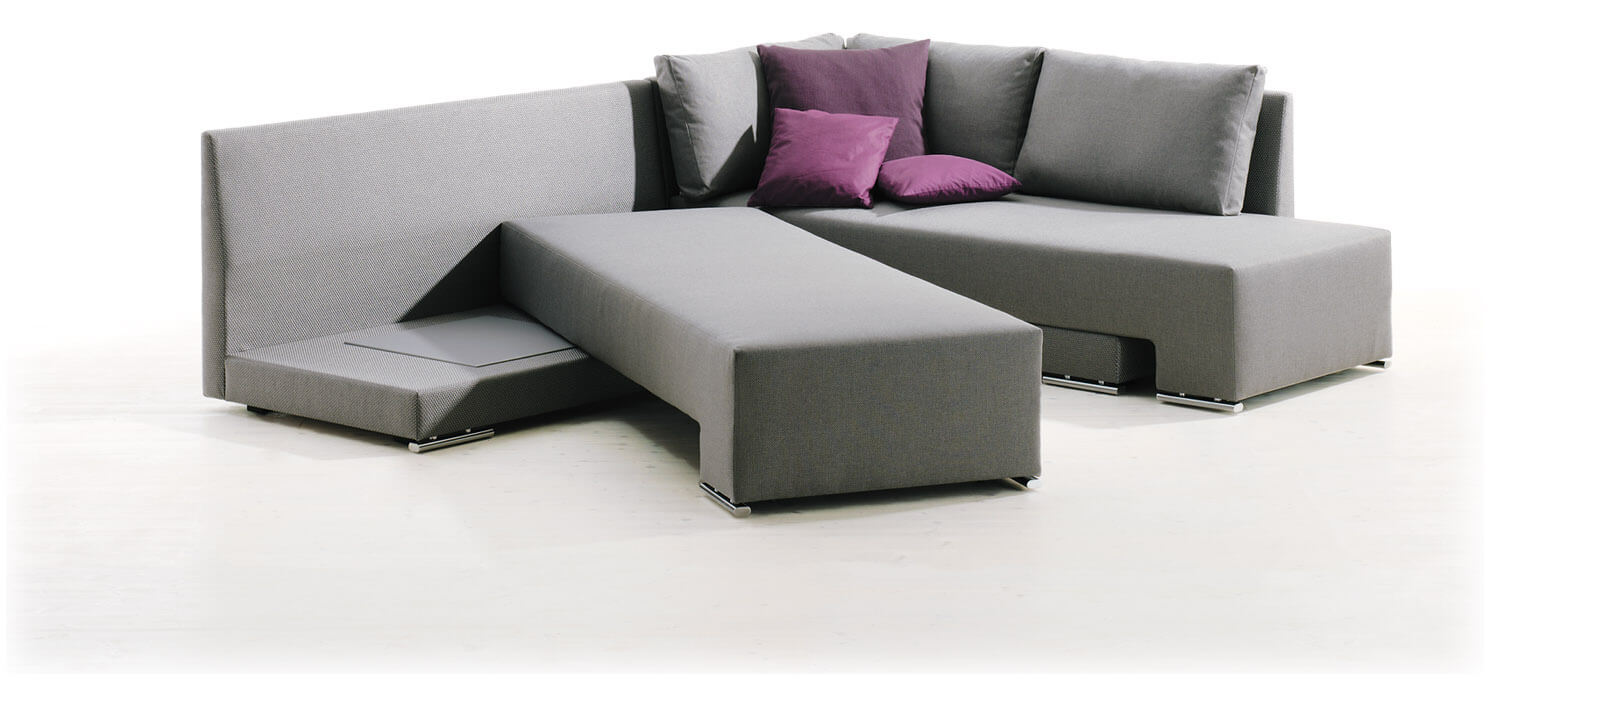 Vento Sectional Sofa Bed